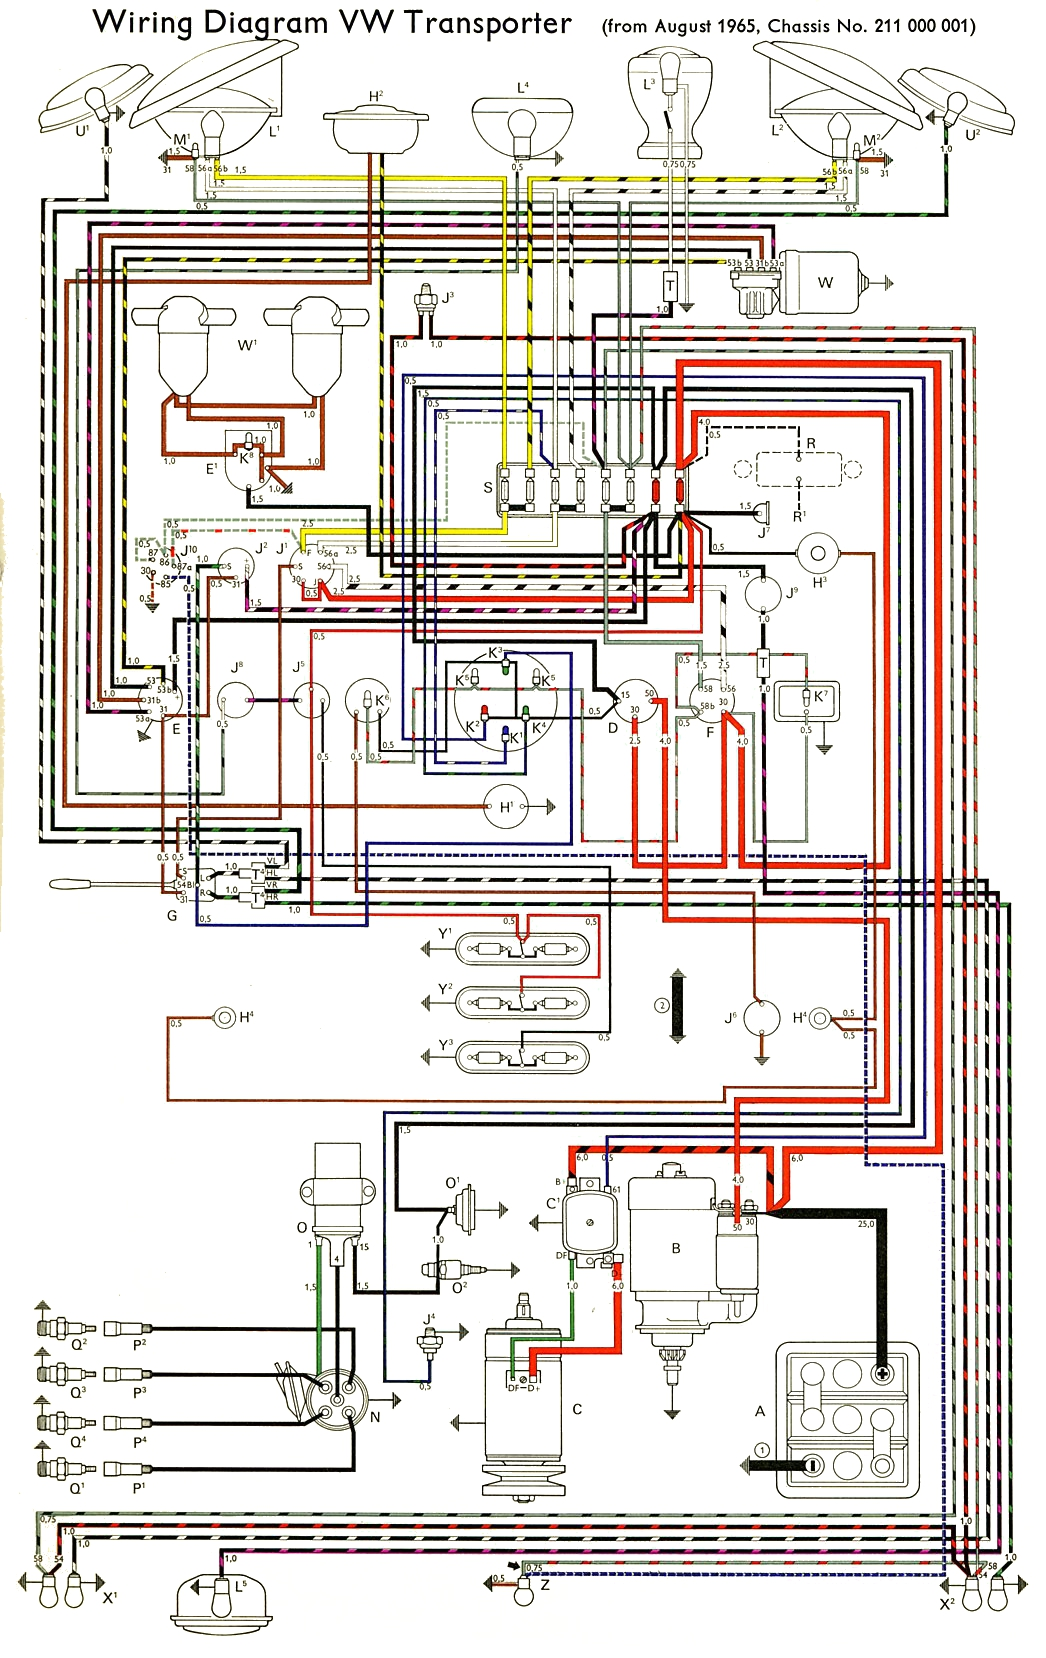 Type 2 Wiring Diagrams Electric Fence Wire Diagram